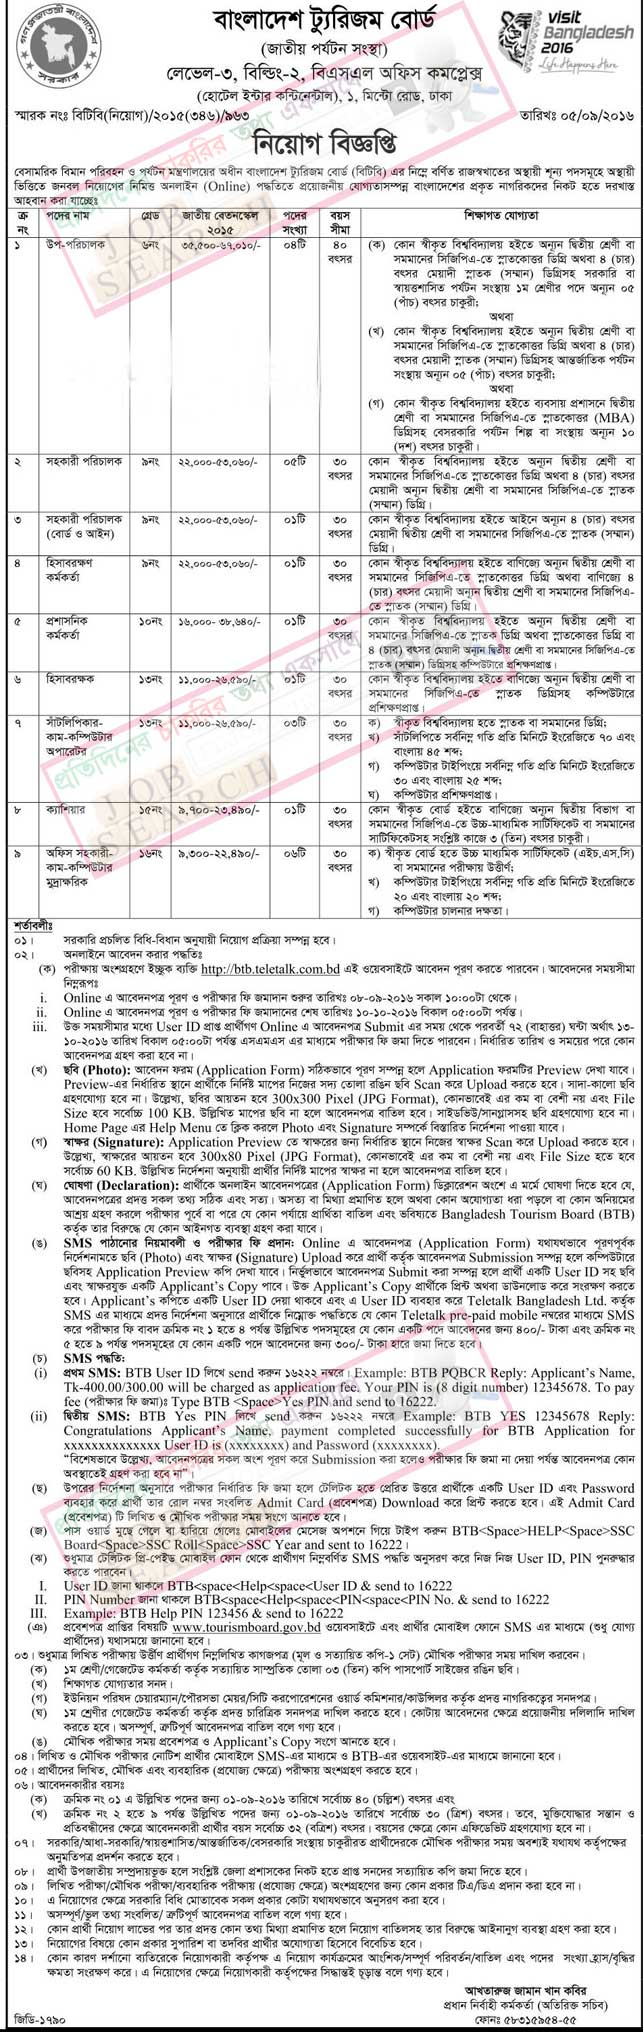 Bangladesh Tourism Board jobs